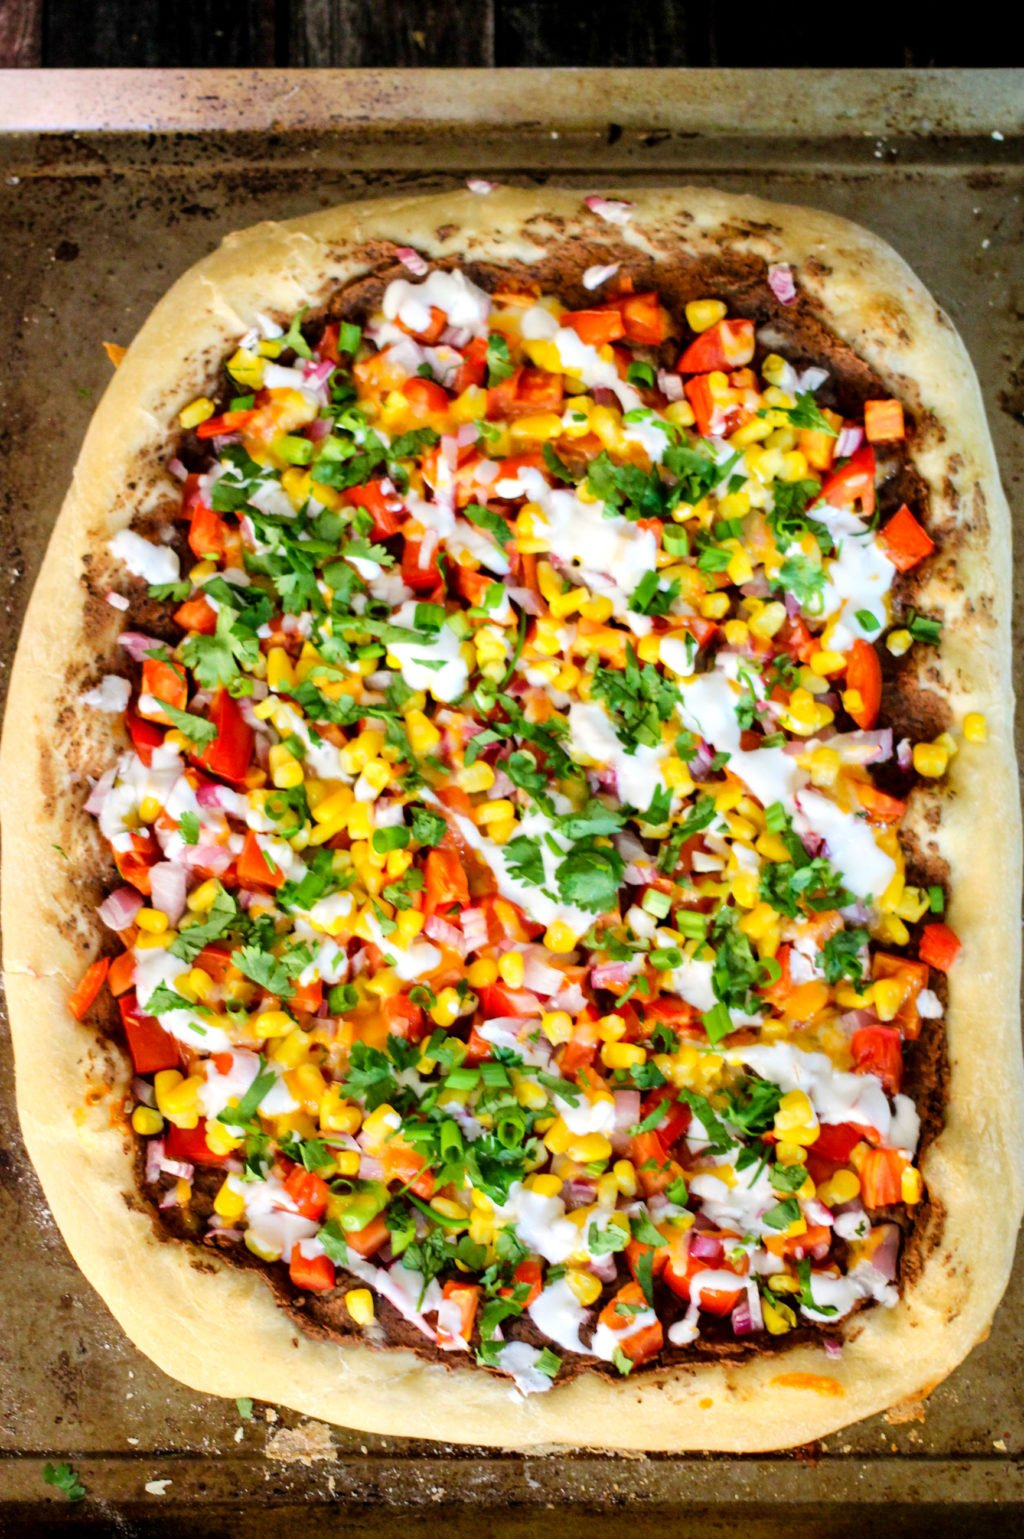 Making homemade pizza is a cinch with pre-made dough and healthy fresh ingredients! This Southwest Pizza is loaded with beans, corn, tomatoes, red onion, and a lime cream!